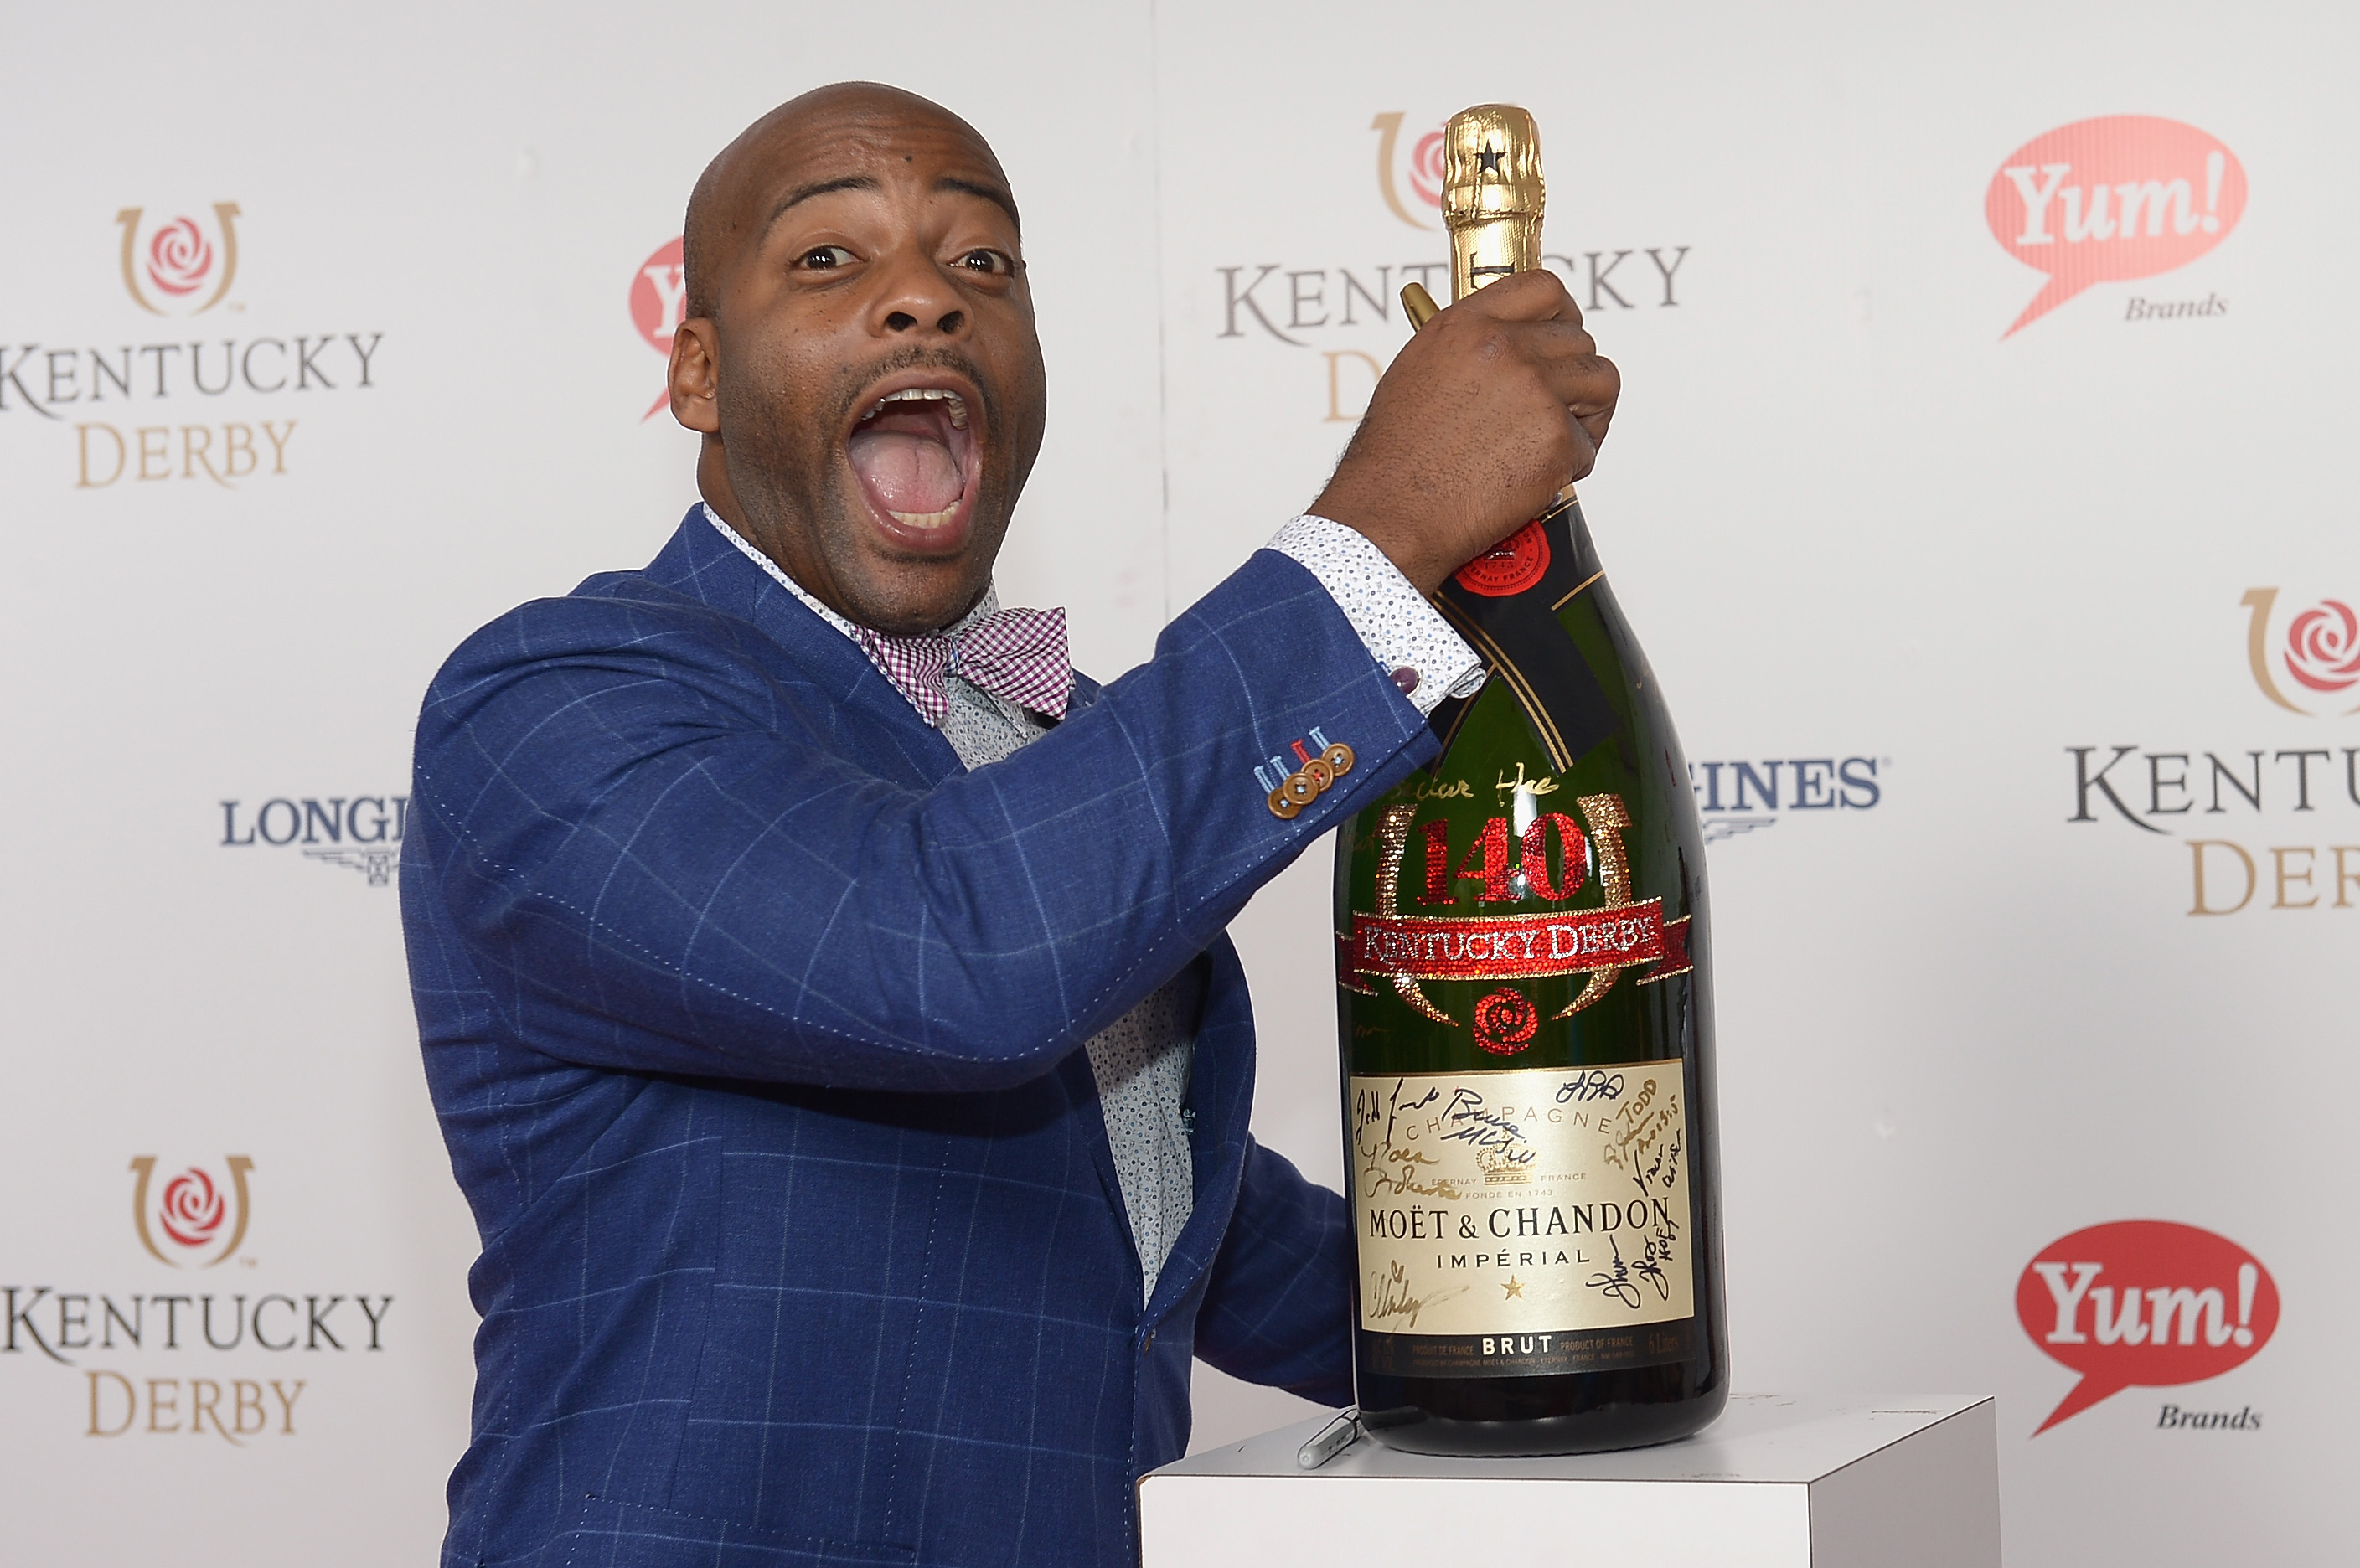 Former California State Assemblyman Isadore Hall toasts with Moet & Chandon at the 140th Kentucky Derby at Churchill Downs on May 3, 2014 in Louisville, Kentucky.  (Photo by Gustavo Caballero/Getty Images for Moet & Chandon)